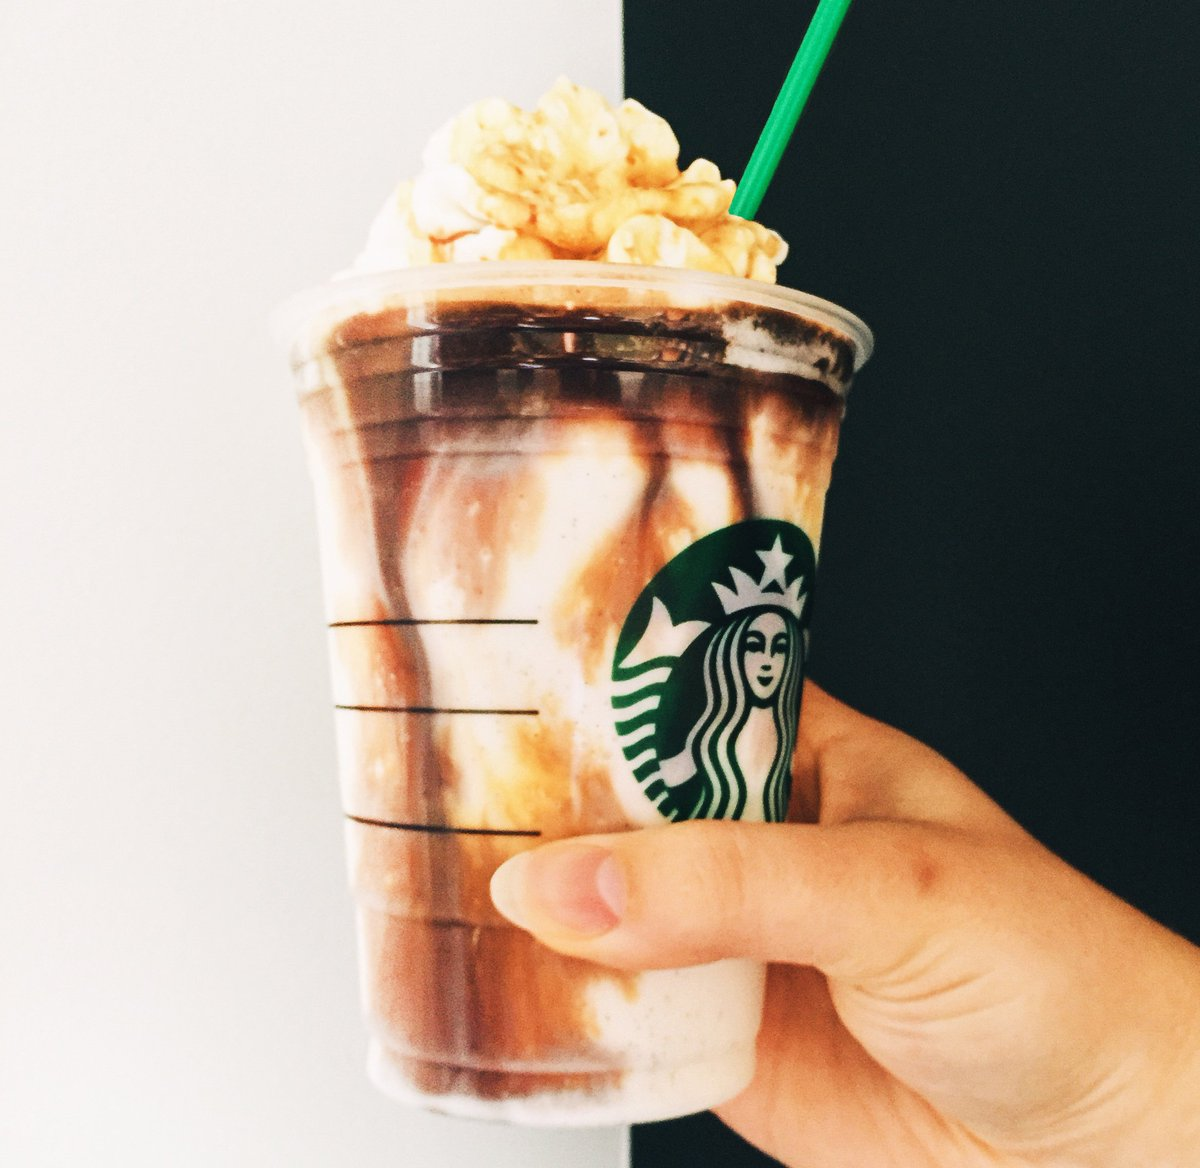 Running hot and cold. In a good way. #AffogatoStyle = 1 shot of espresso poured on top of any Frappuccino.